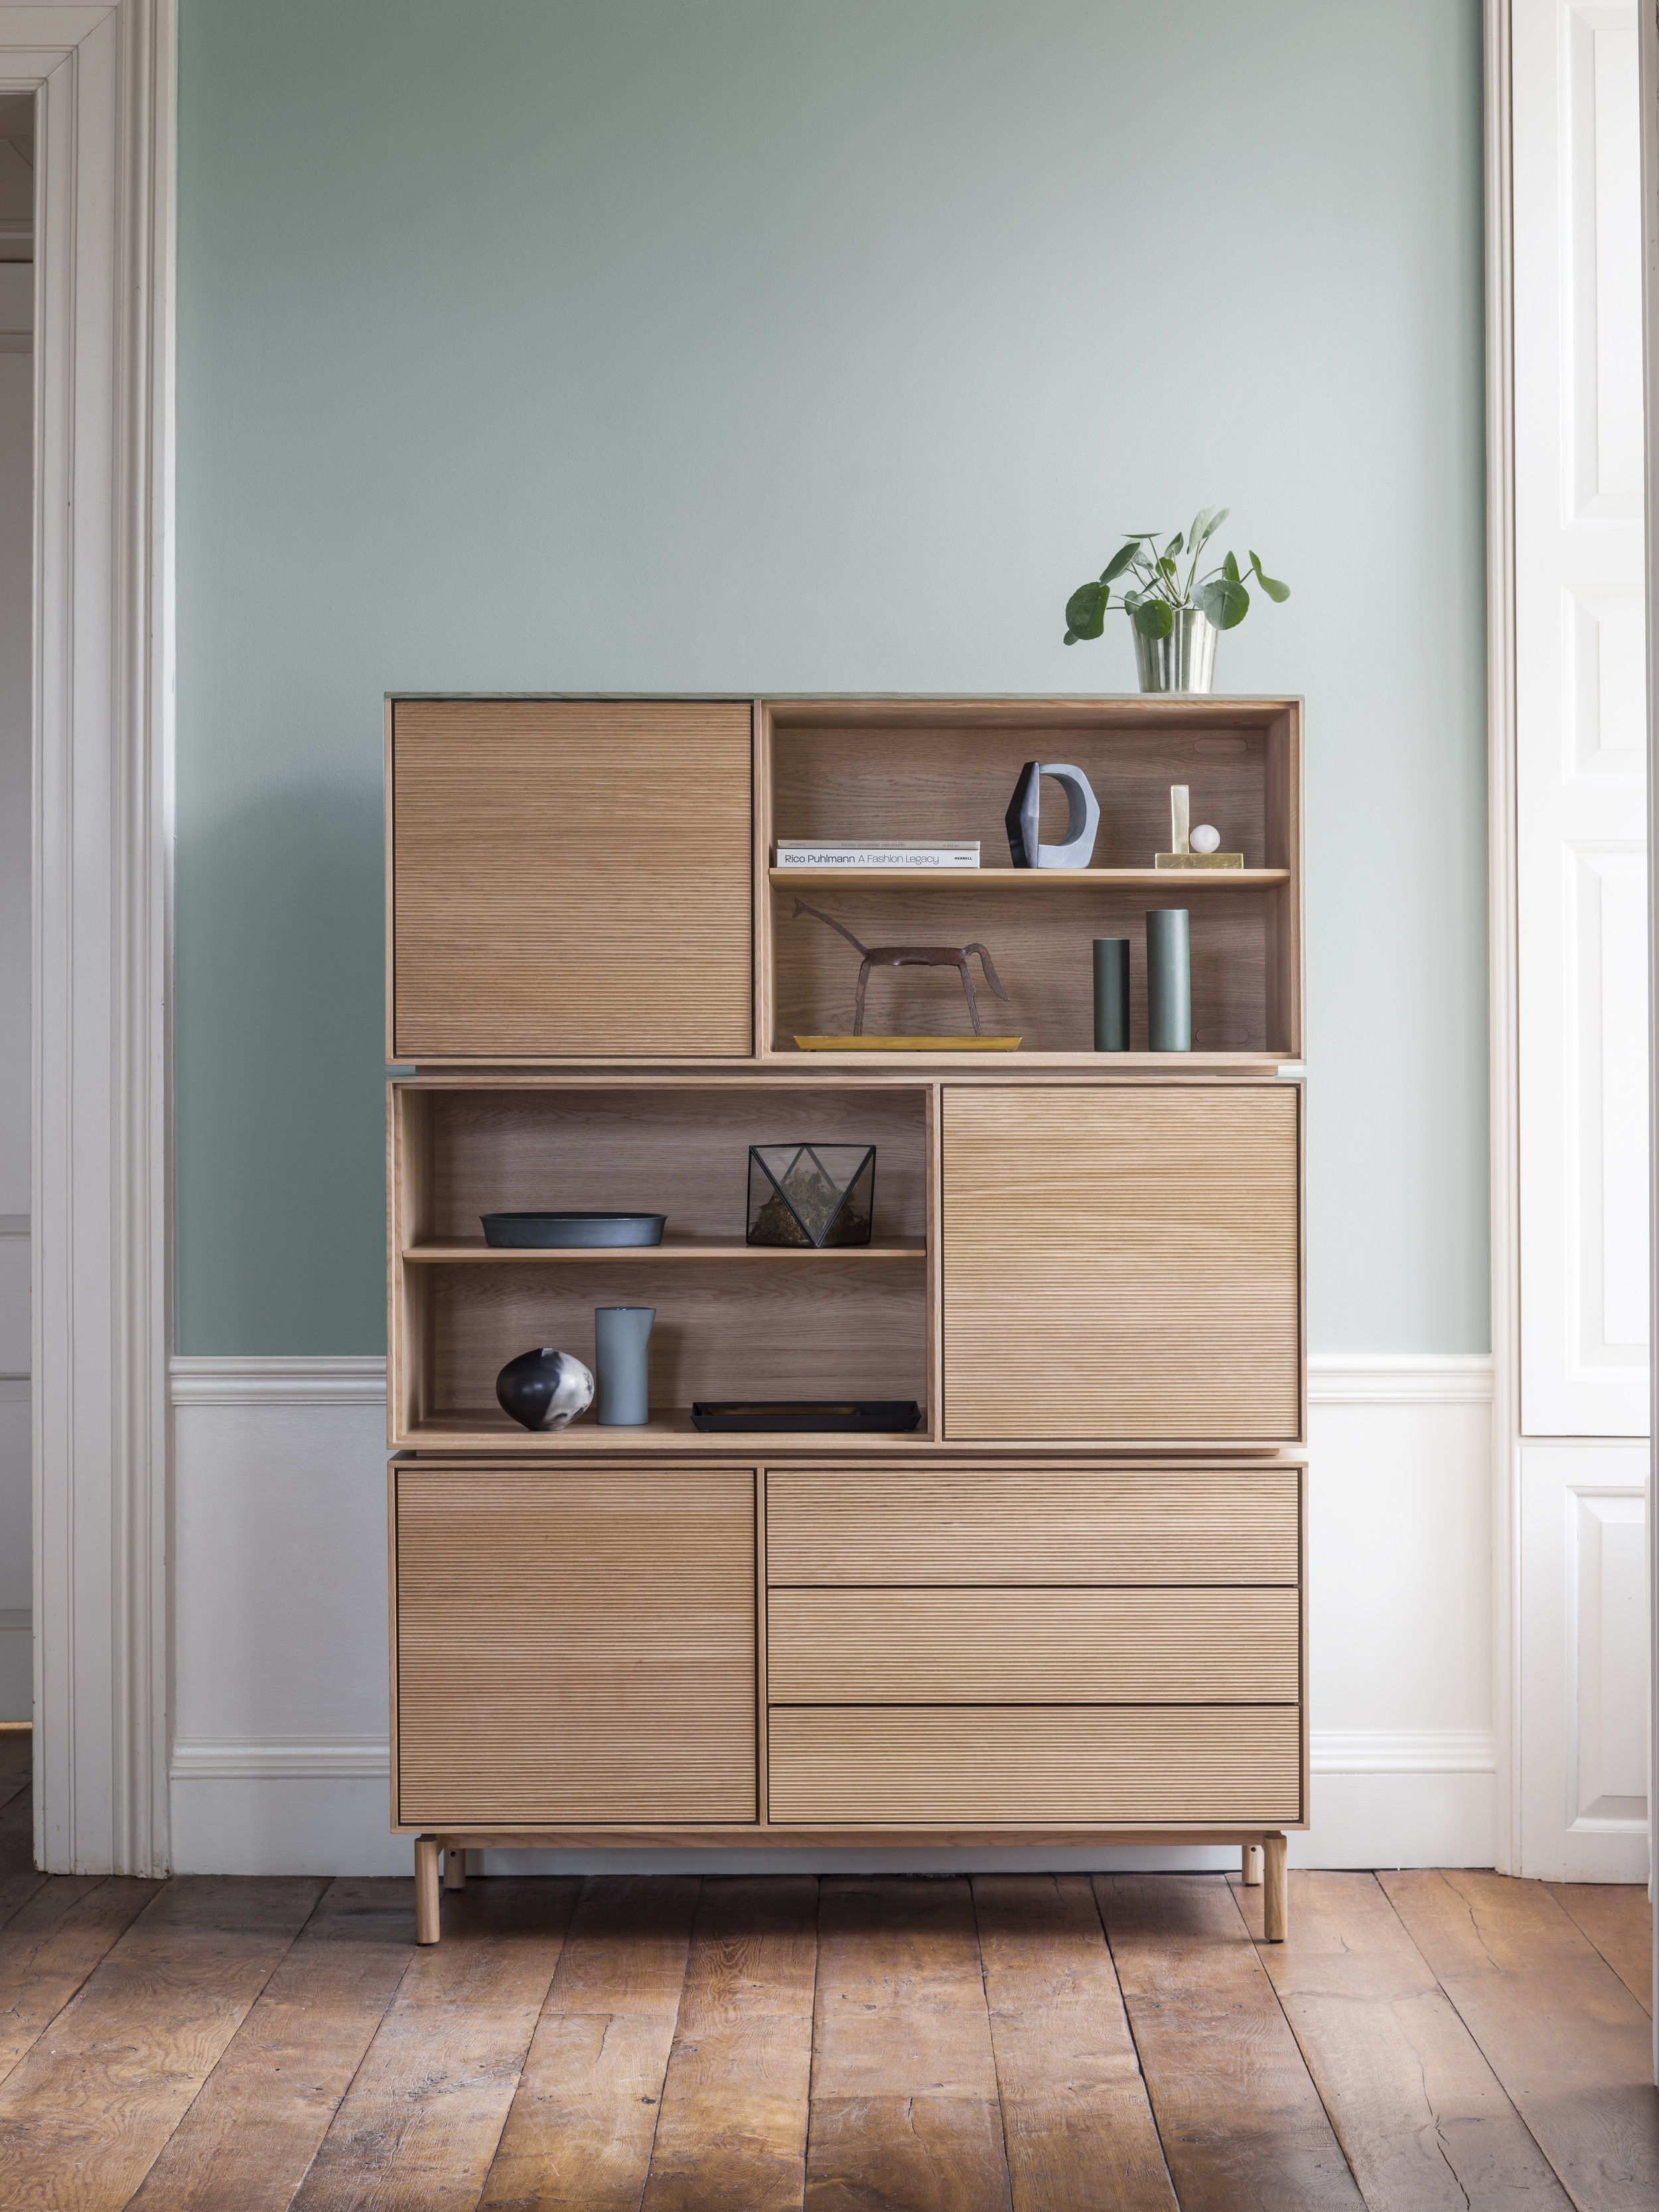 Dylan Freeth 'Modulo' Stacking Cabinets Image Credit: Ercol